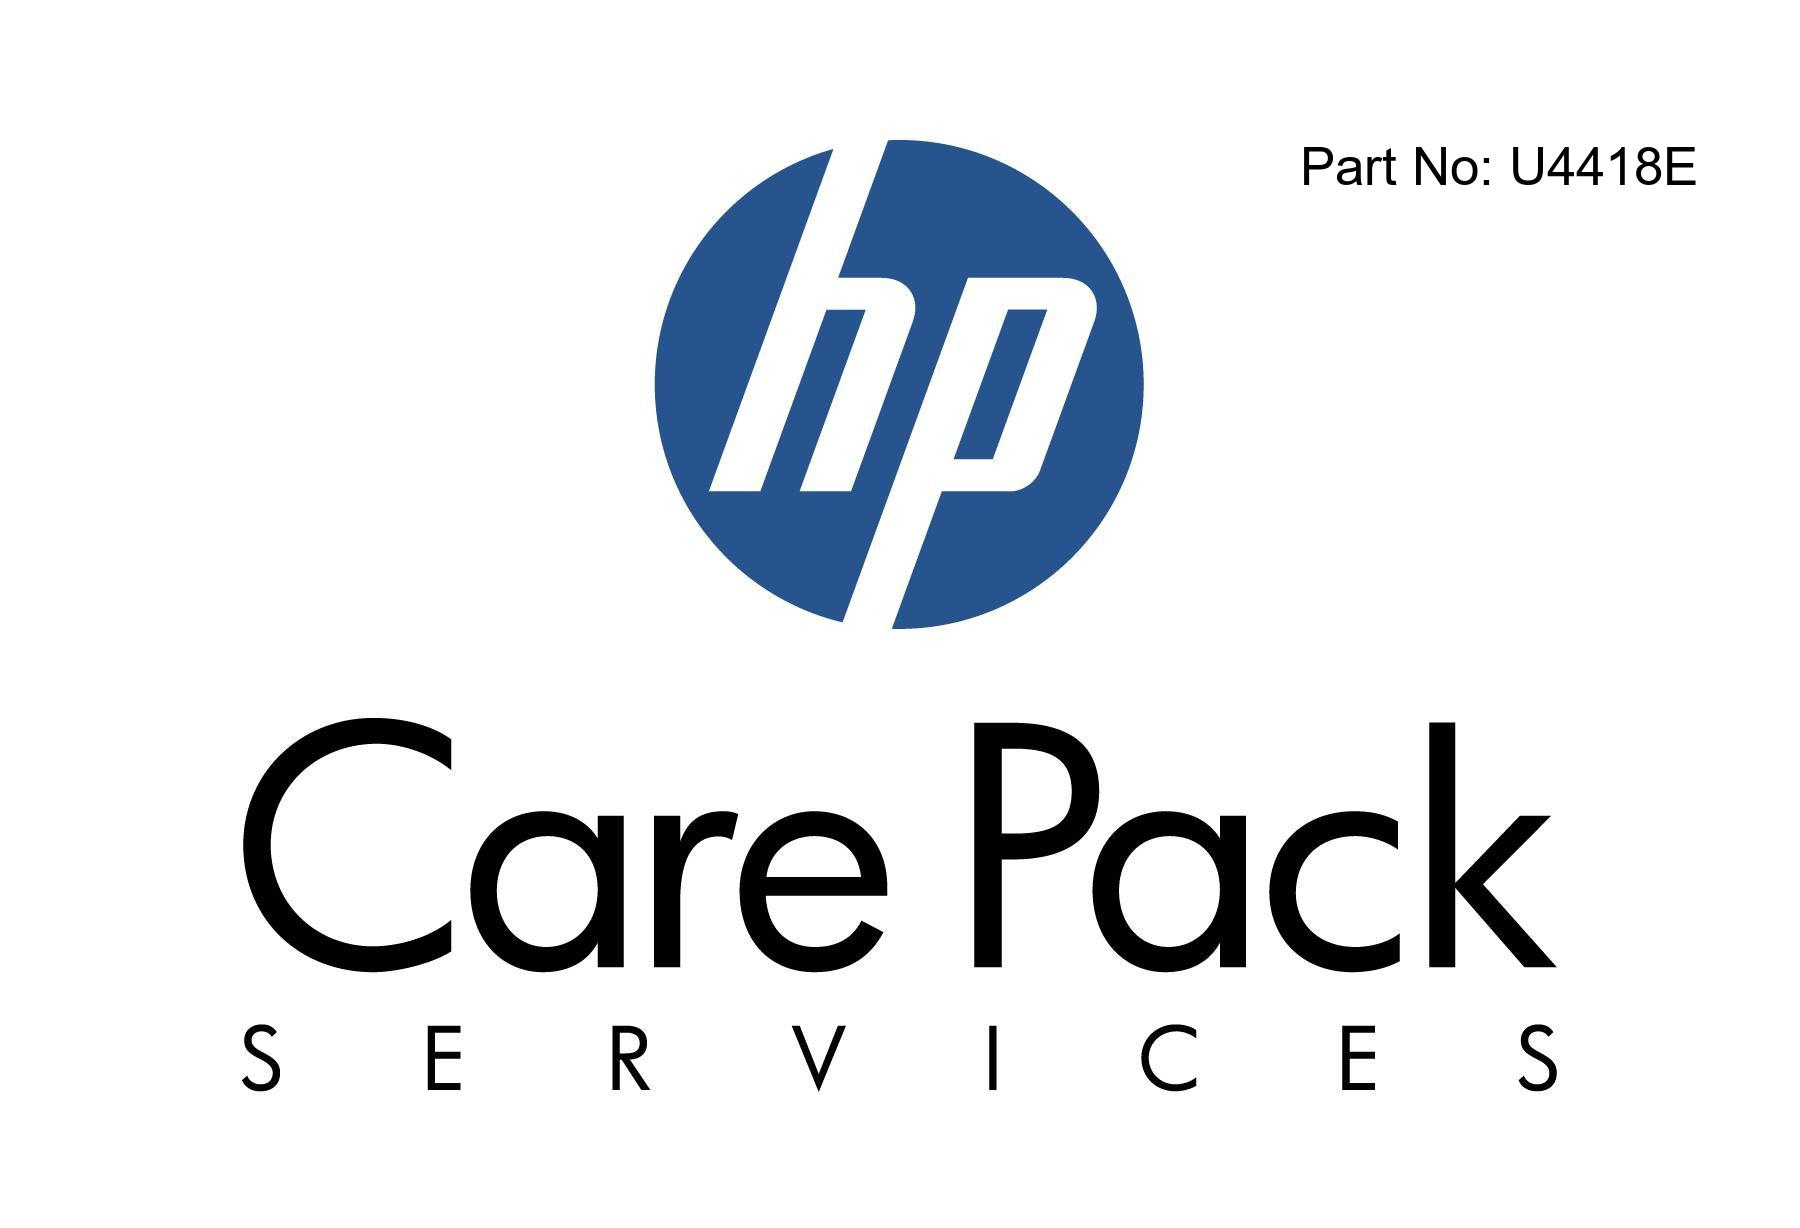 Electronic HP Care Pack Next Business Day Hardware Support for Travelers - Extended service agreement - parts and labor - 3 years - on-site - business hours - response time: NBD - for EliteBook 735 G6 745 G6 830 G6 840 G6 850 G6 EliteBook x360 Mobil